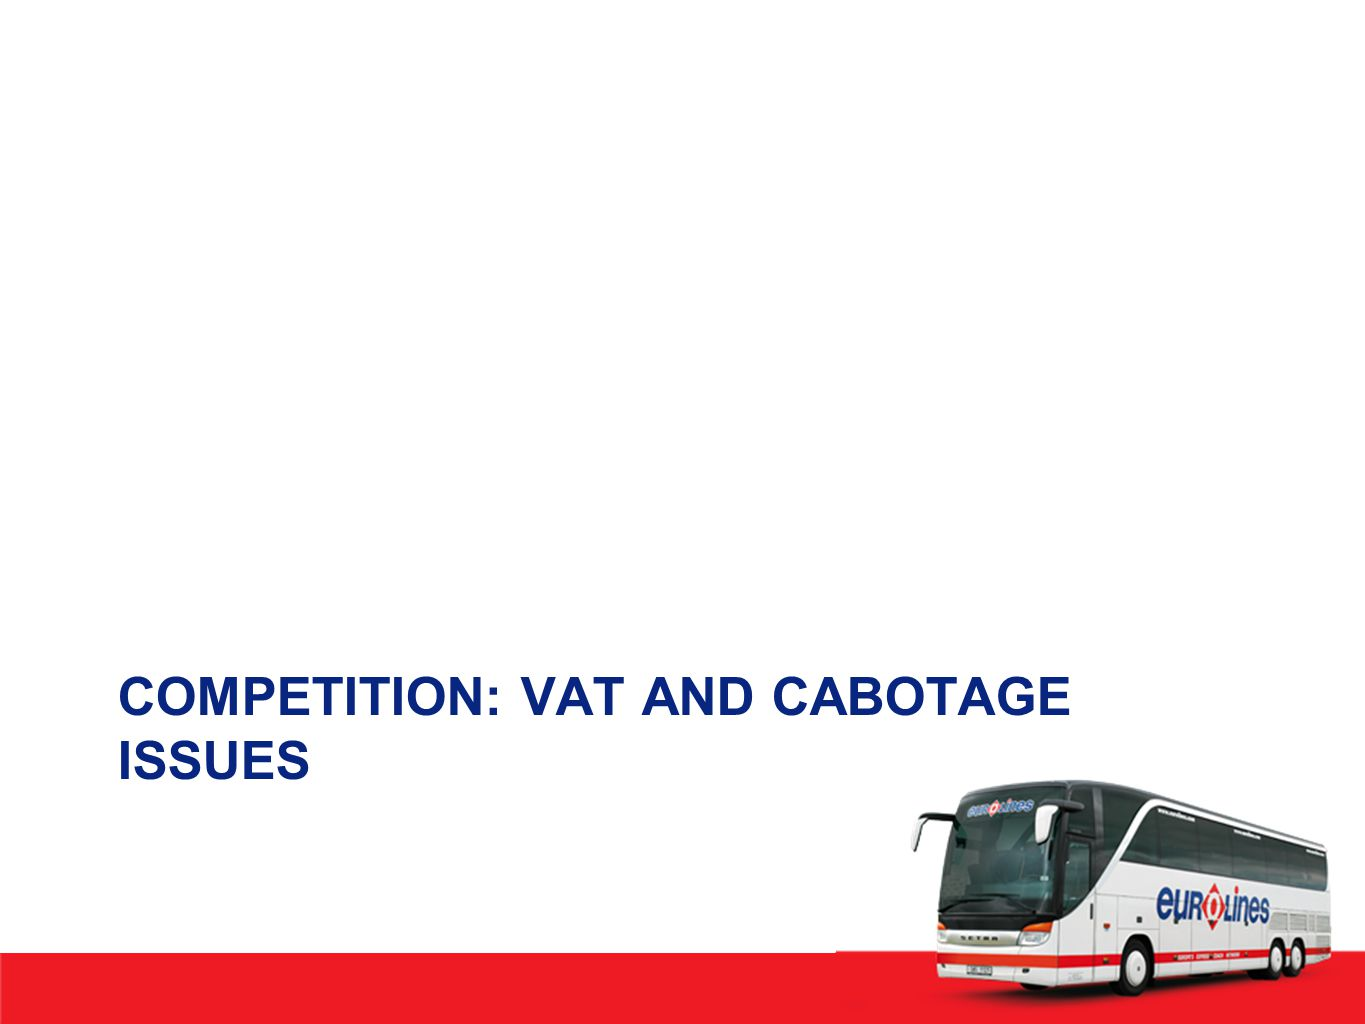 COMPETITION: VAT AND CABOTAGE ISSUES